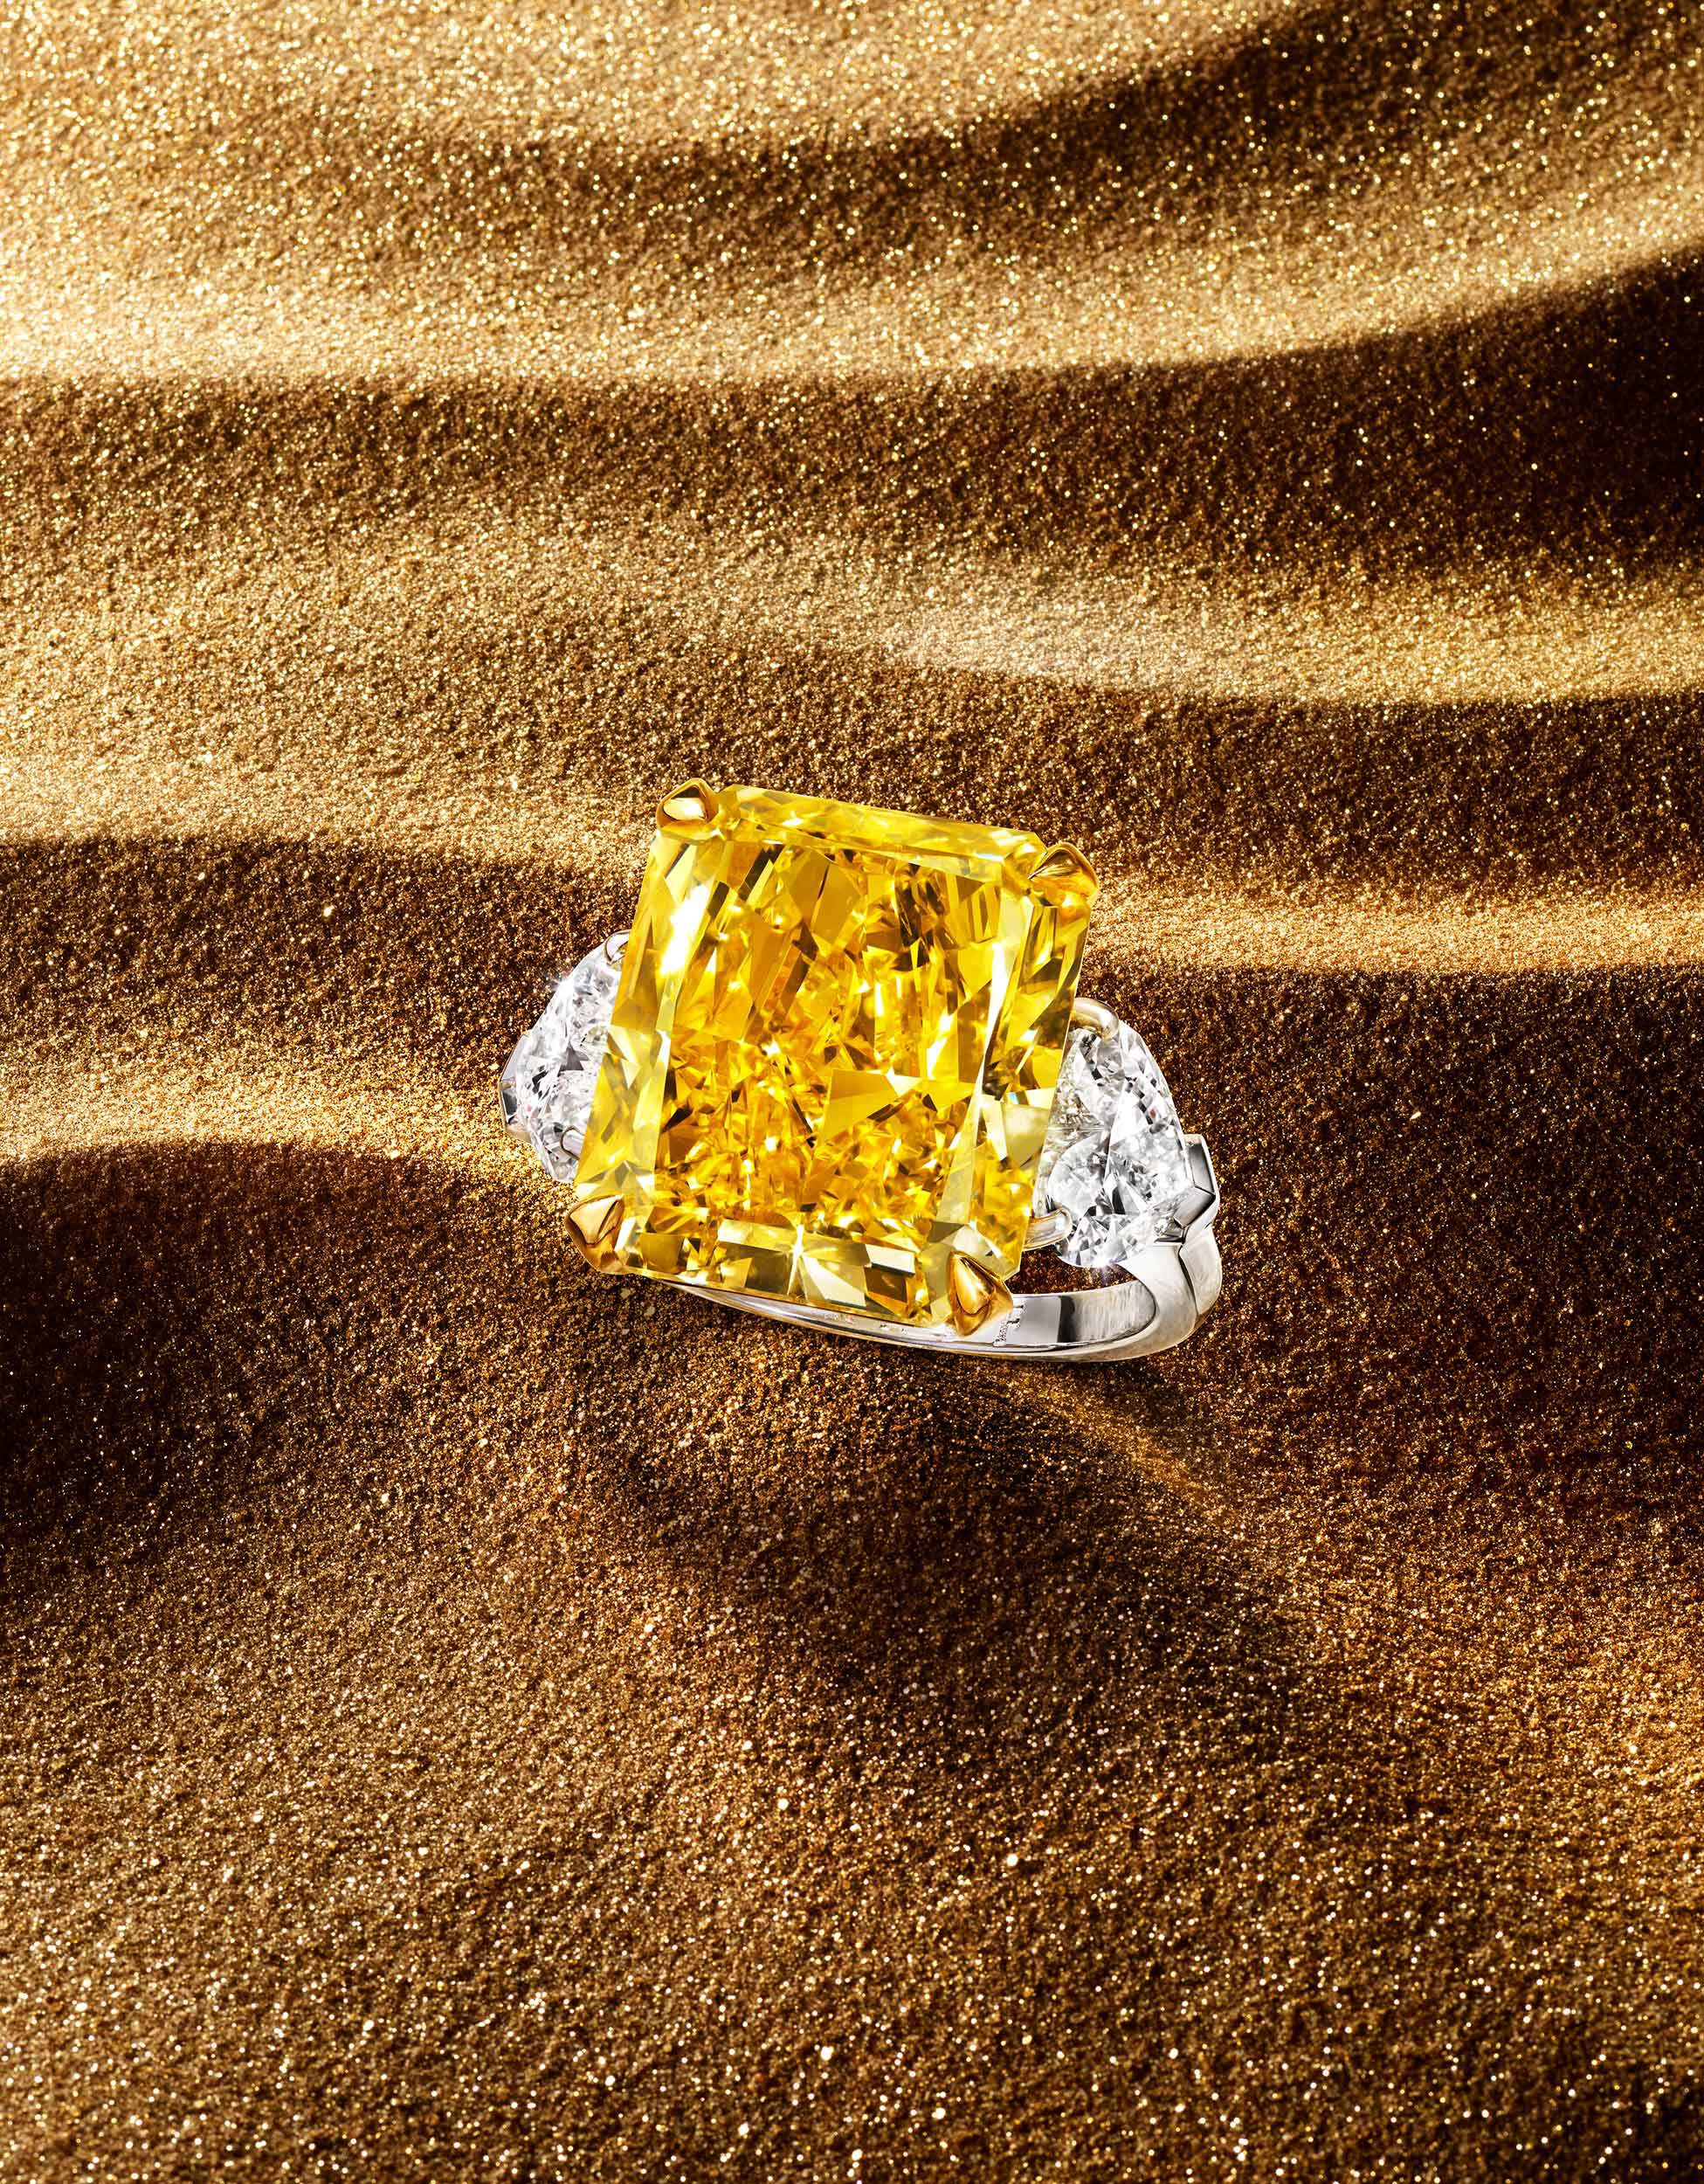 A Graff Yellow diamond unique solitaire high jewellery ring, on sands